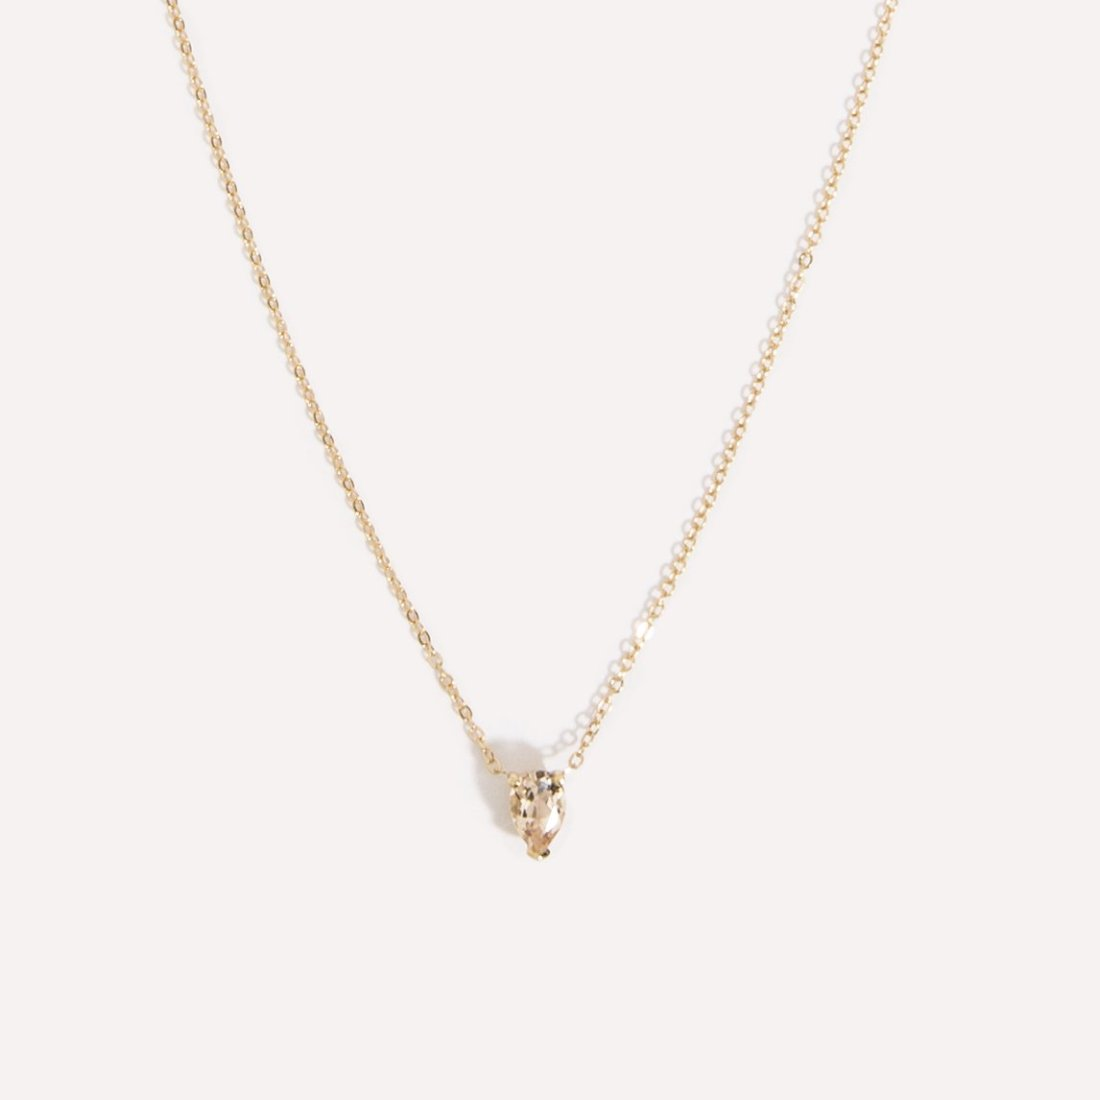 Teardrop Morganite Necklace